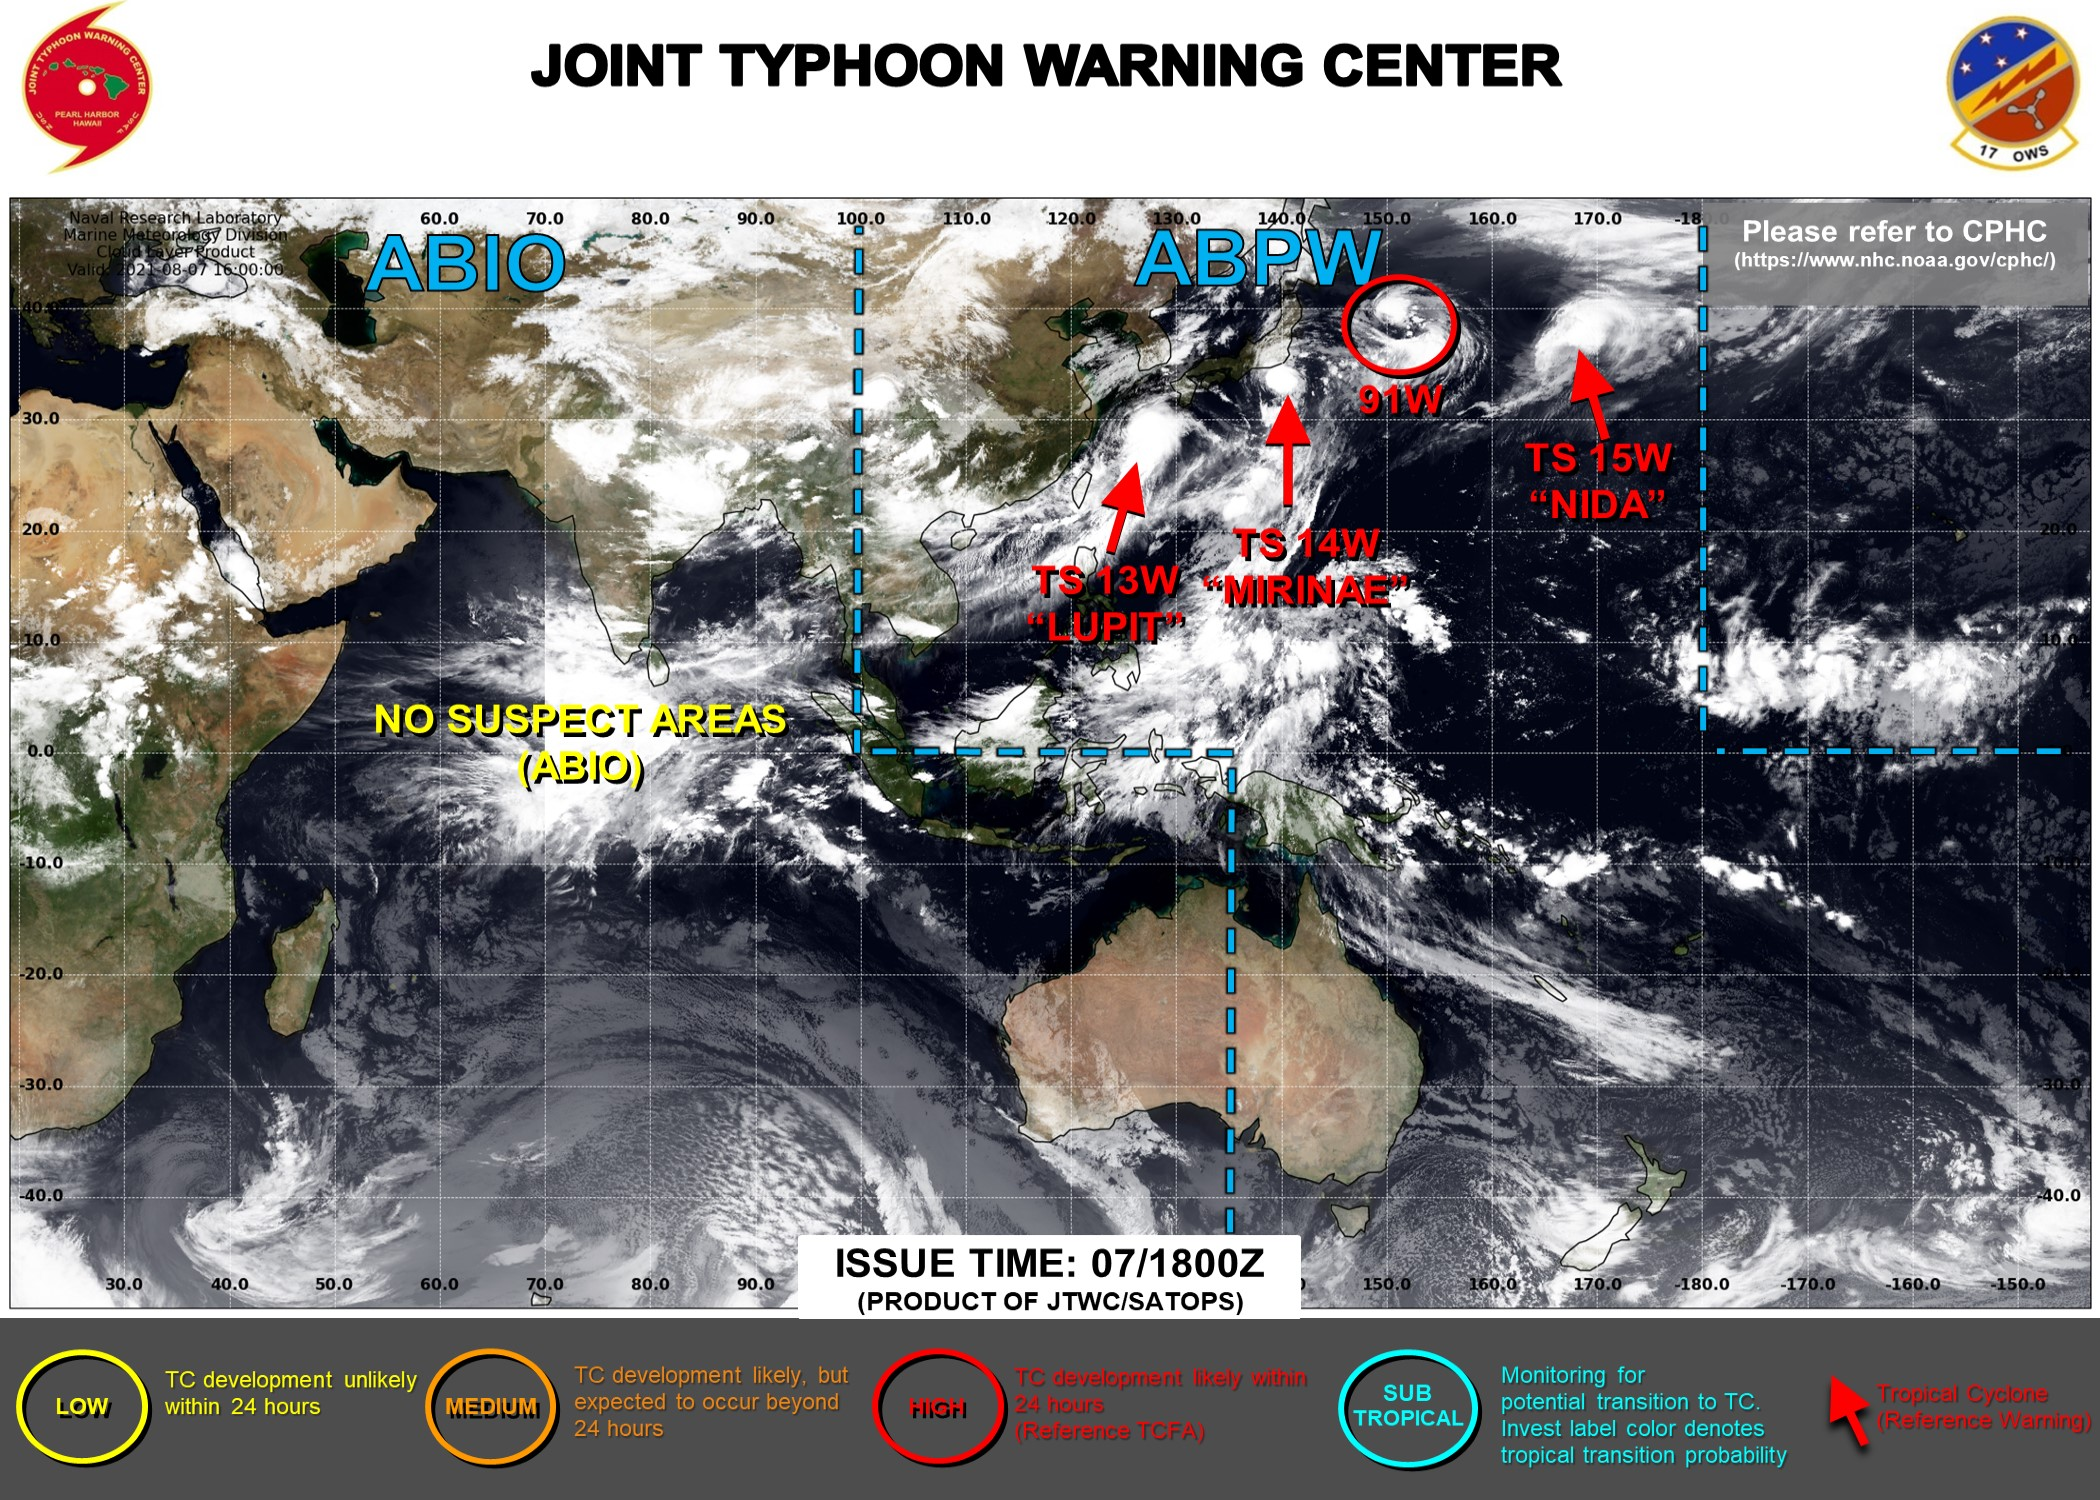 JTWC ARE ISSUING 6HOURLY WARNINGS AND 3HOURLY SATELLITE BULLETINS ON 13W, 14W, 15W. INVEST 91W WAS UP-GRADED TO MEDIUM AT 06/2030UTC.